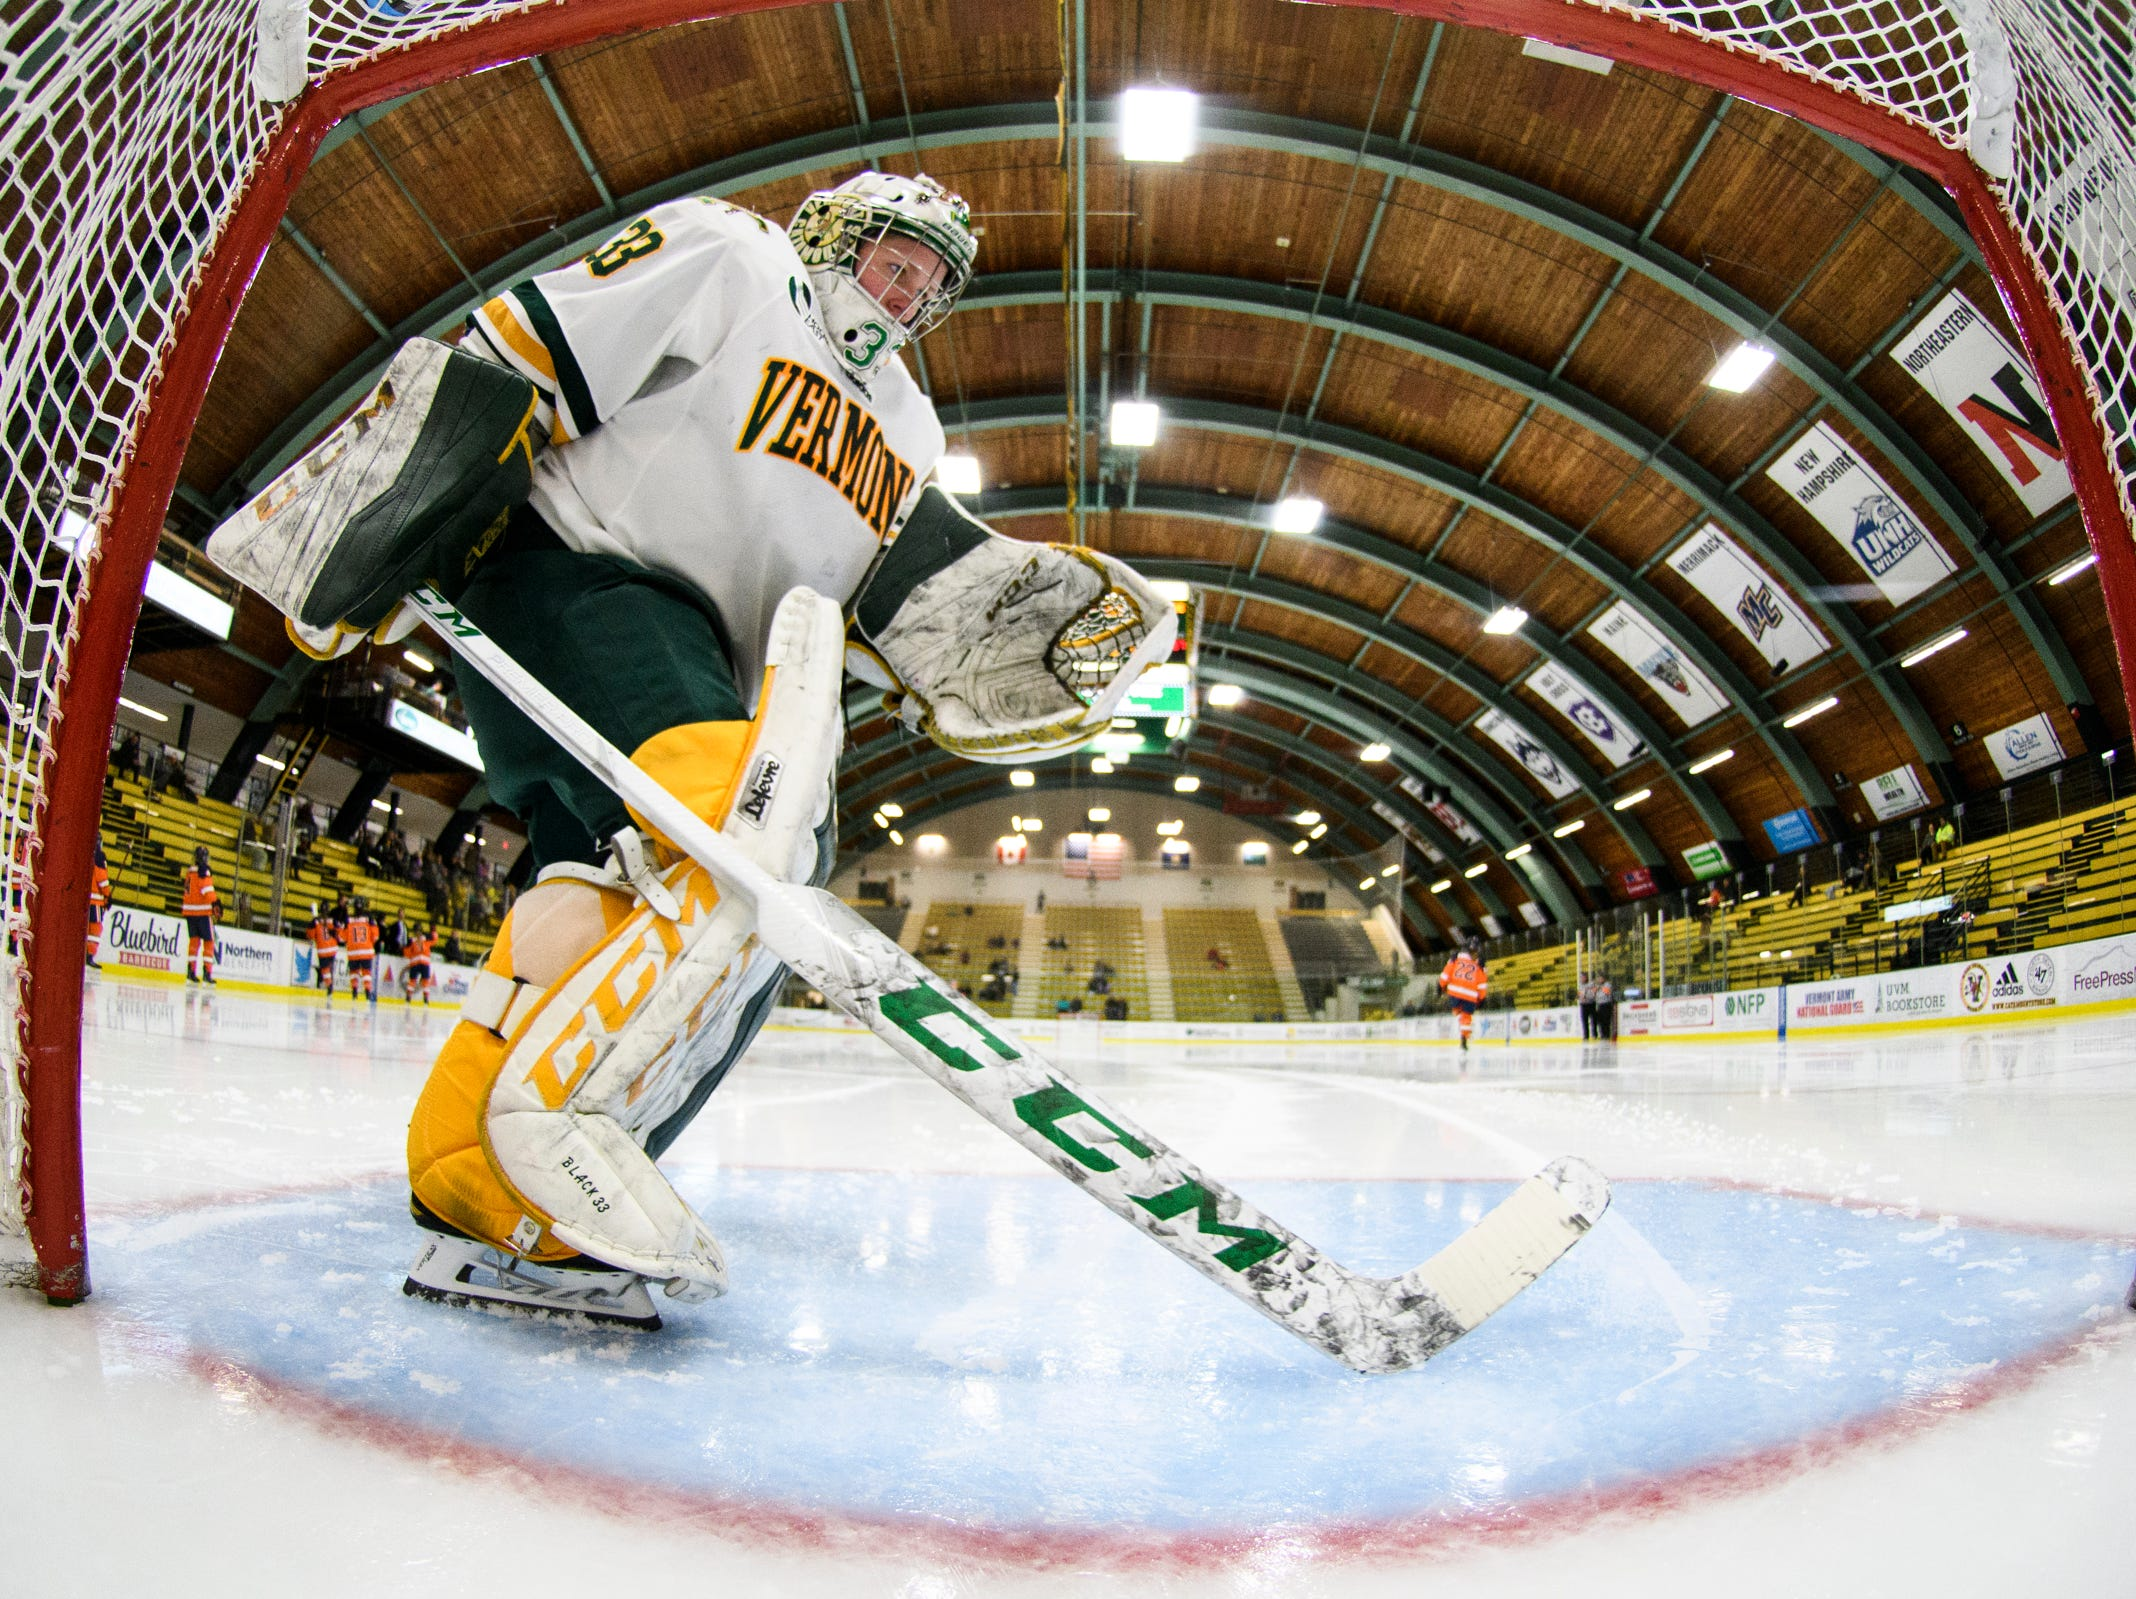 Vermont goalie Melissa Black (33) during the women's hockey game between the Syracuse Orange and the Vermont Catamounts at Gutterson Field House on Friday night November 23, 2018 in Burlington.